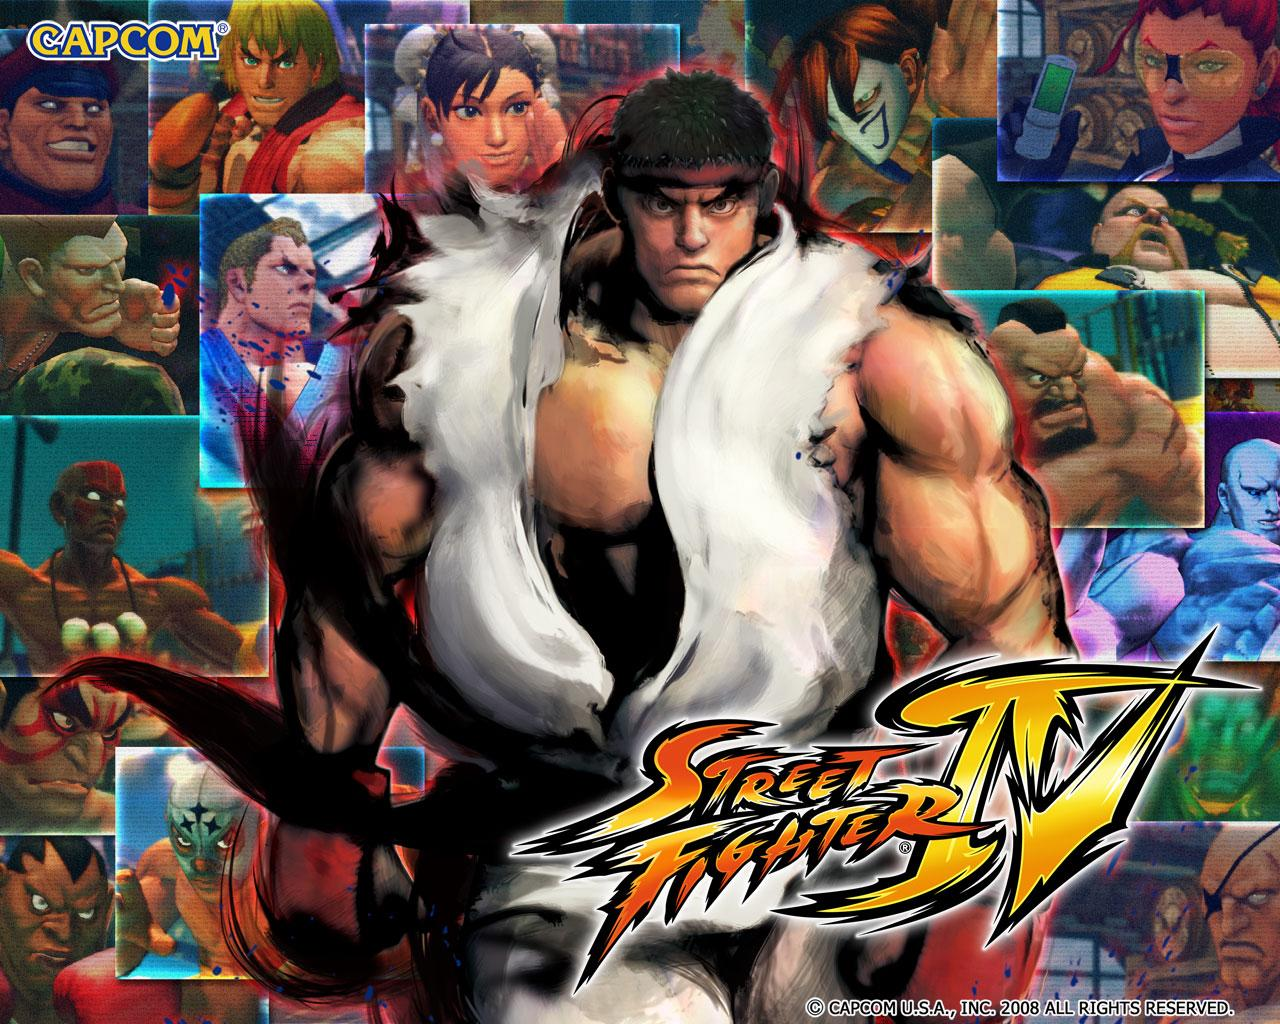 Обои Street Fighter IV таблица бойцов